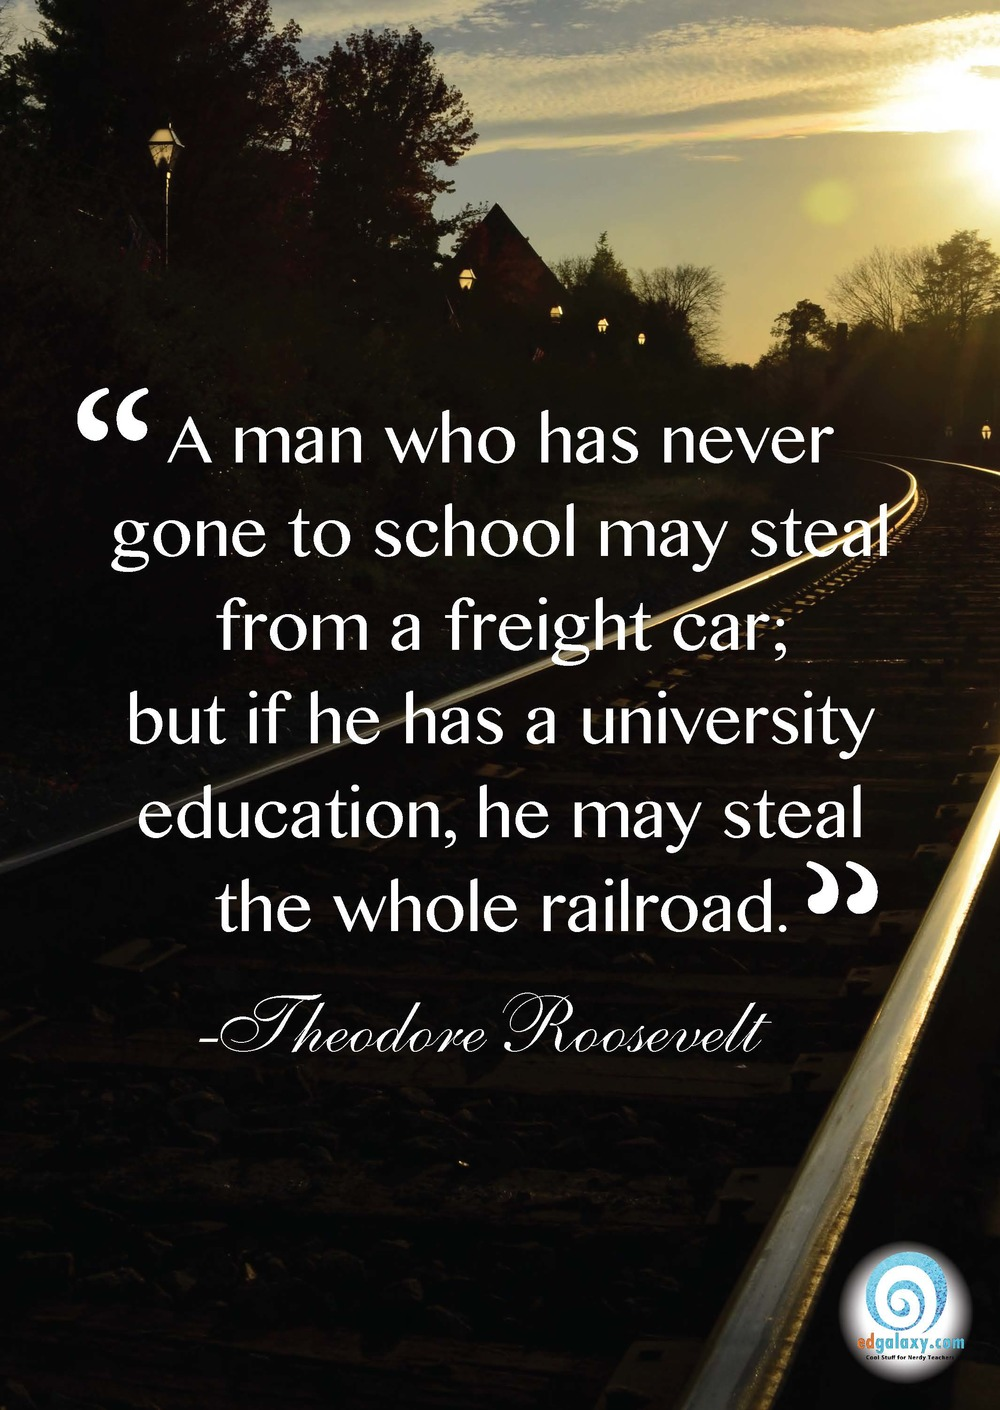 Inspirational Quotes About Education Extraordinary Education Quotes  Famous Quotes For Teachers And Students .